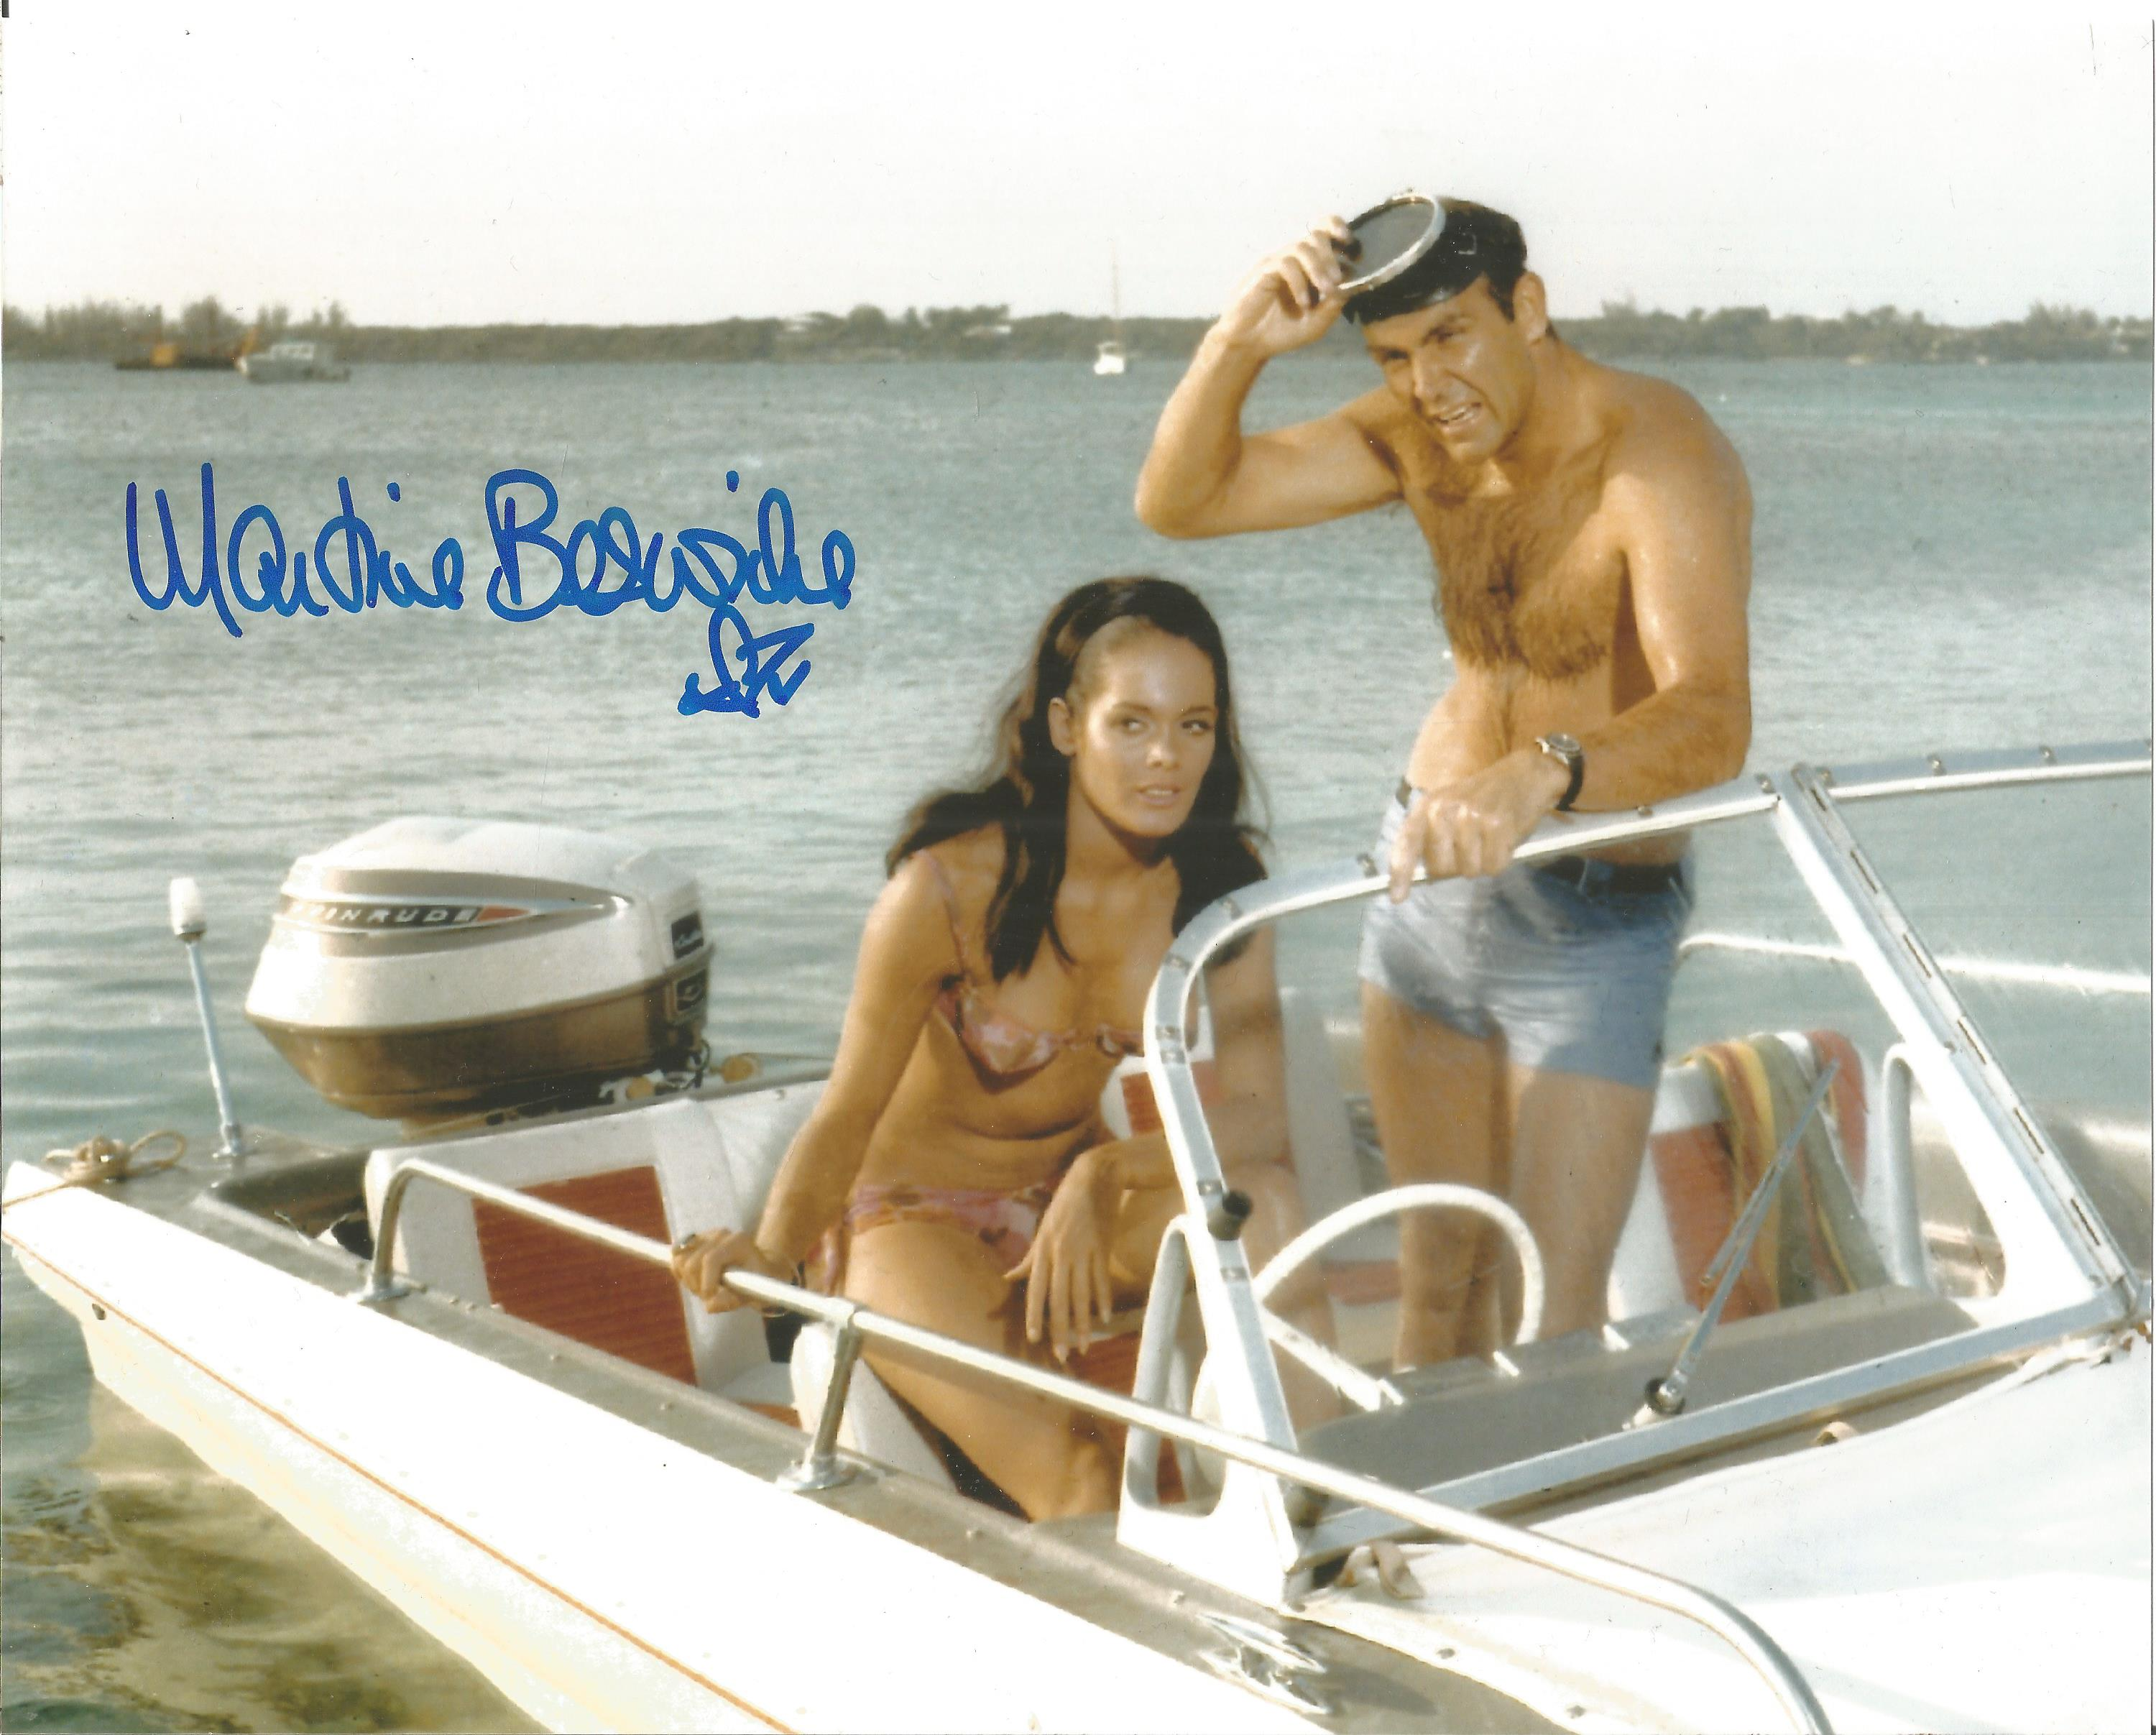 Martin Beswick signed 10 x 8 inch colour James Bond photo on boat with Sean Connery. Good condition.